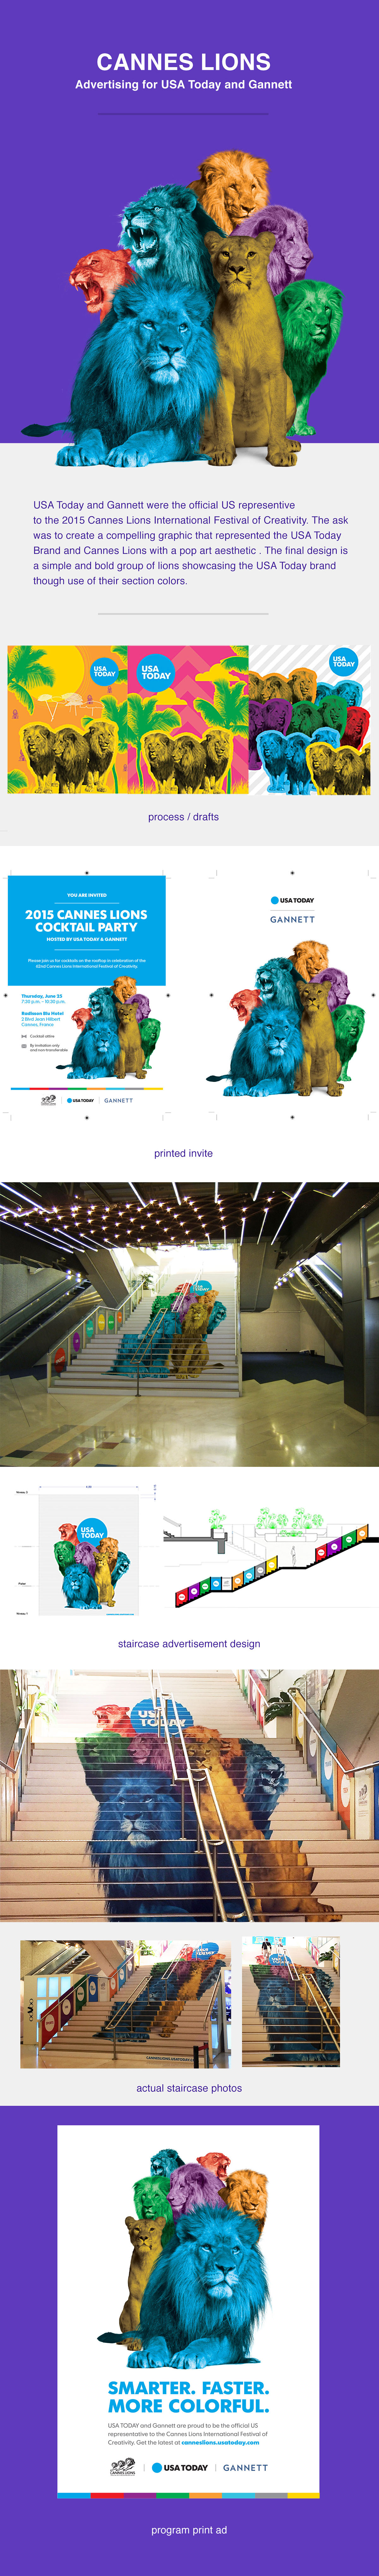 Advertising  Staircase Ad Cannes usa today gannett Lions Cannes lions photo illustration